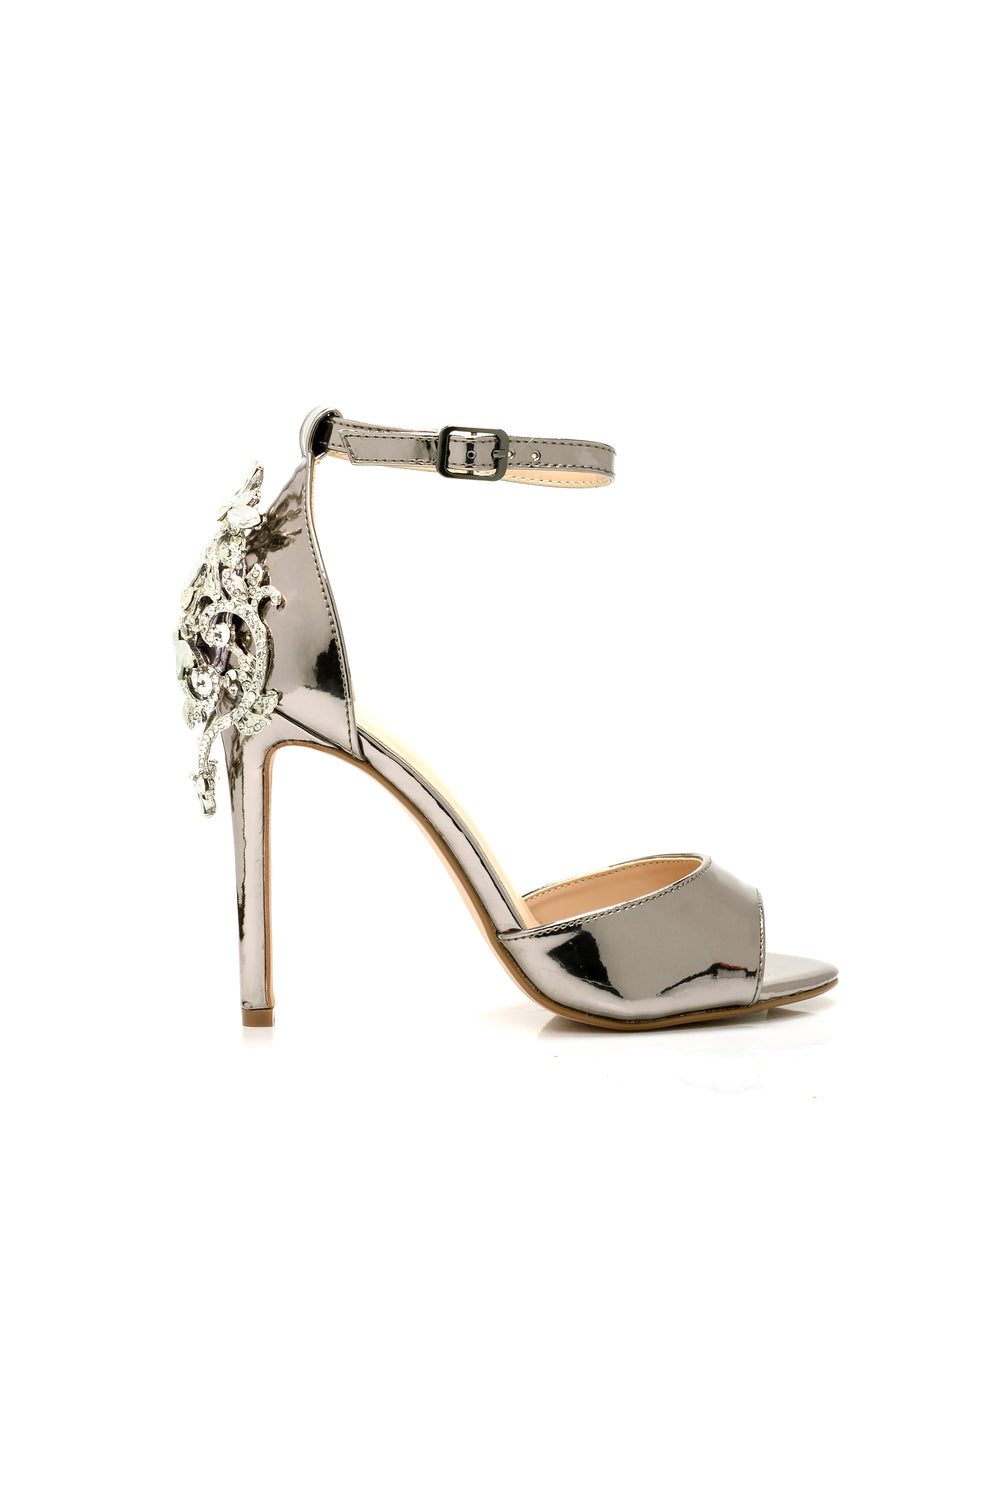 Who Do You Love Heels - Pewter